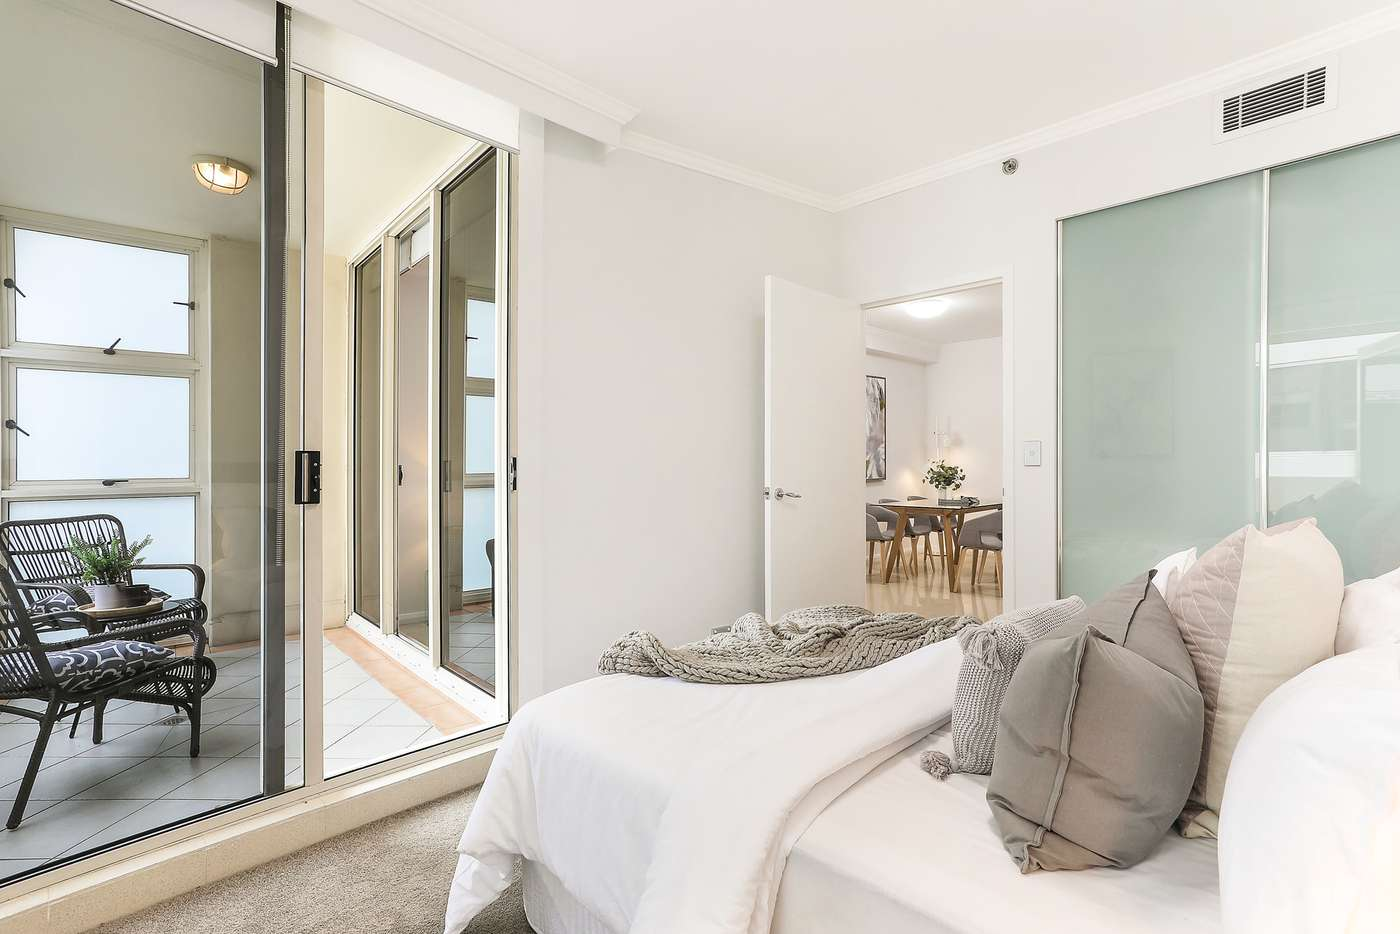 Fifth view of Homely apartment listing, 98/361-363 Kent Street, Sydney NSW 2000